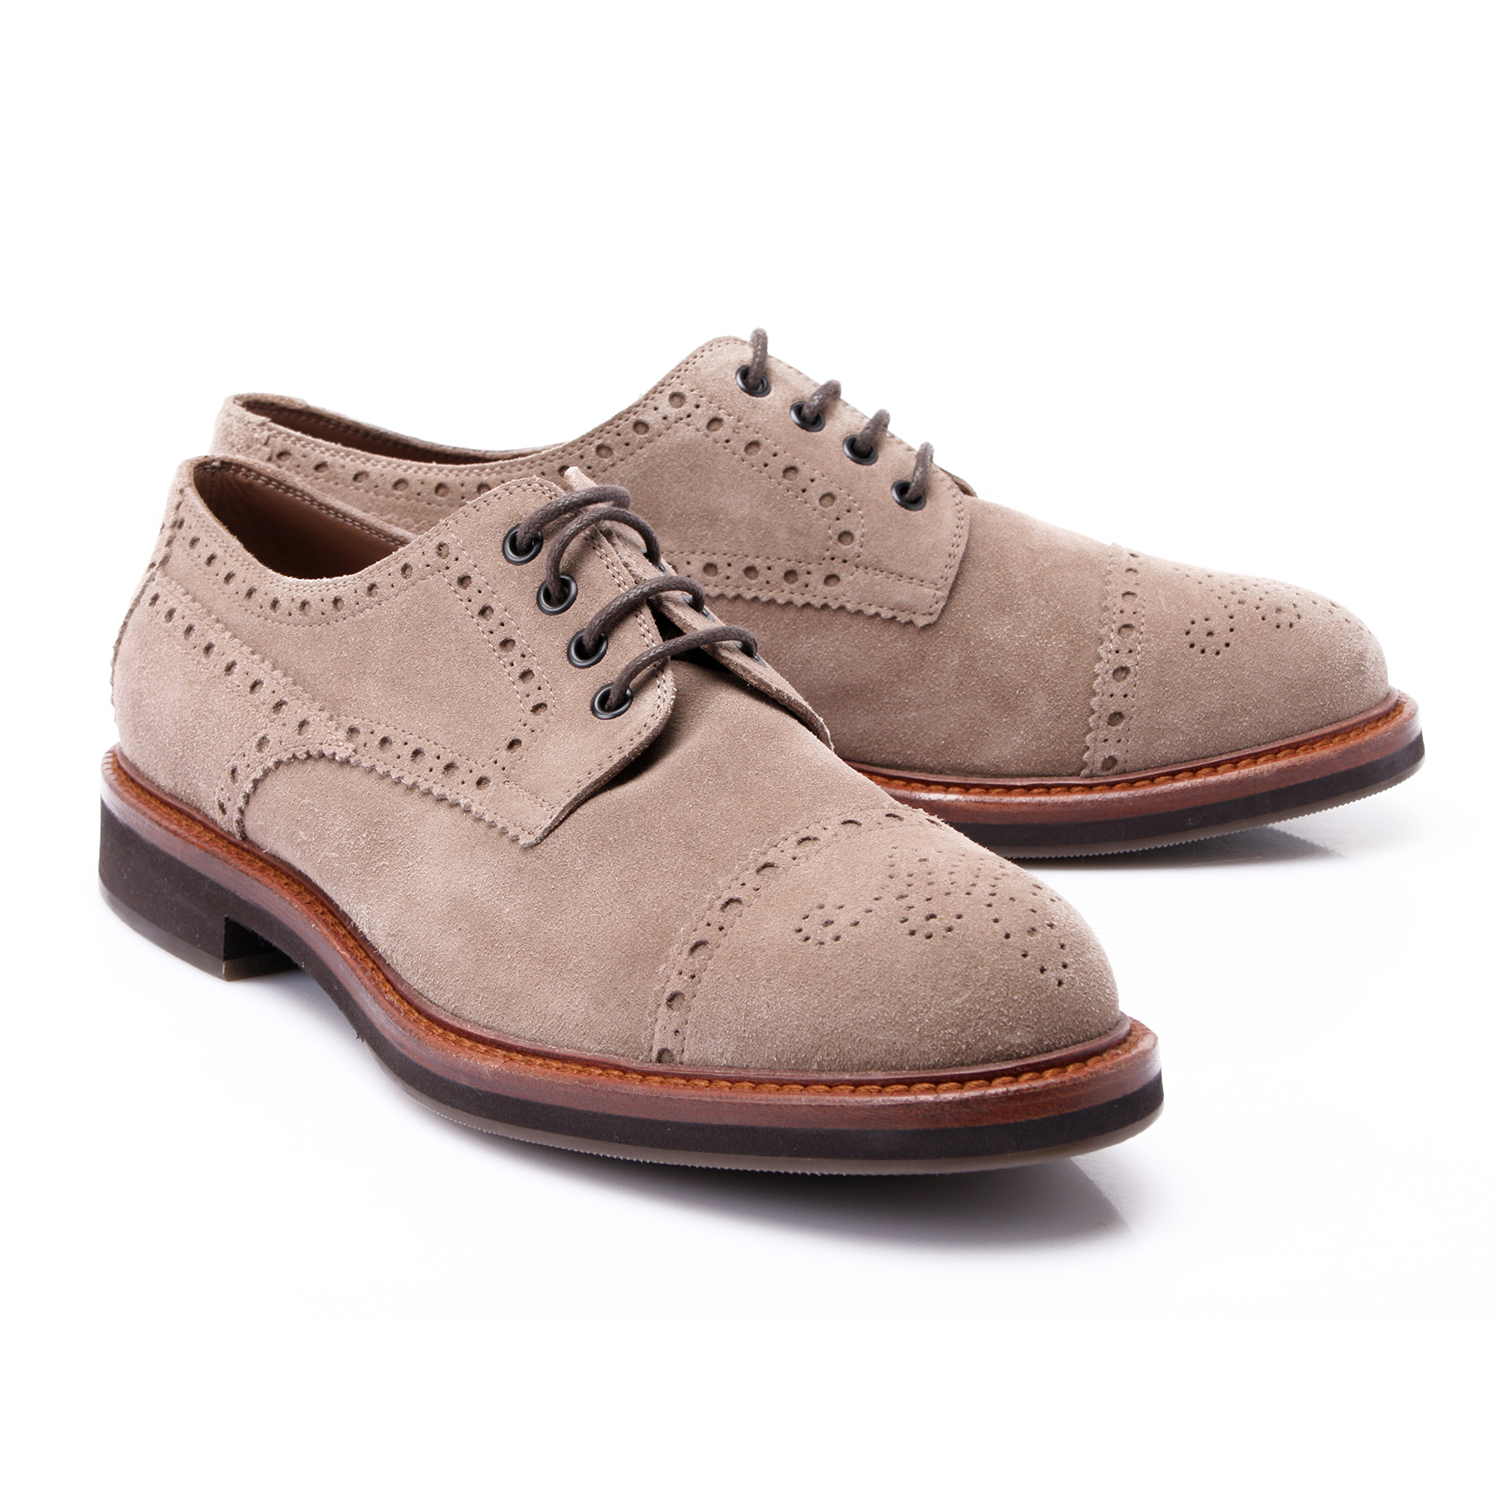 edd8f5cb6b6 Suede Derby Lace-Up    Tan (Euro  40) - Brunello Cucinelli - Touch of Modern